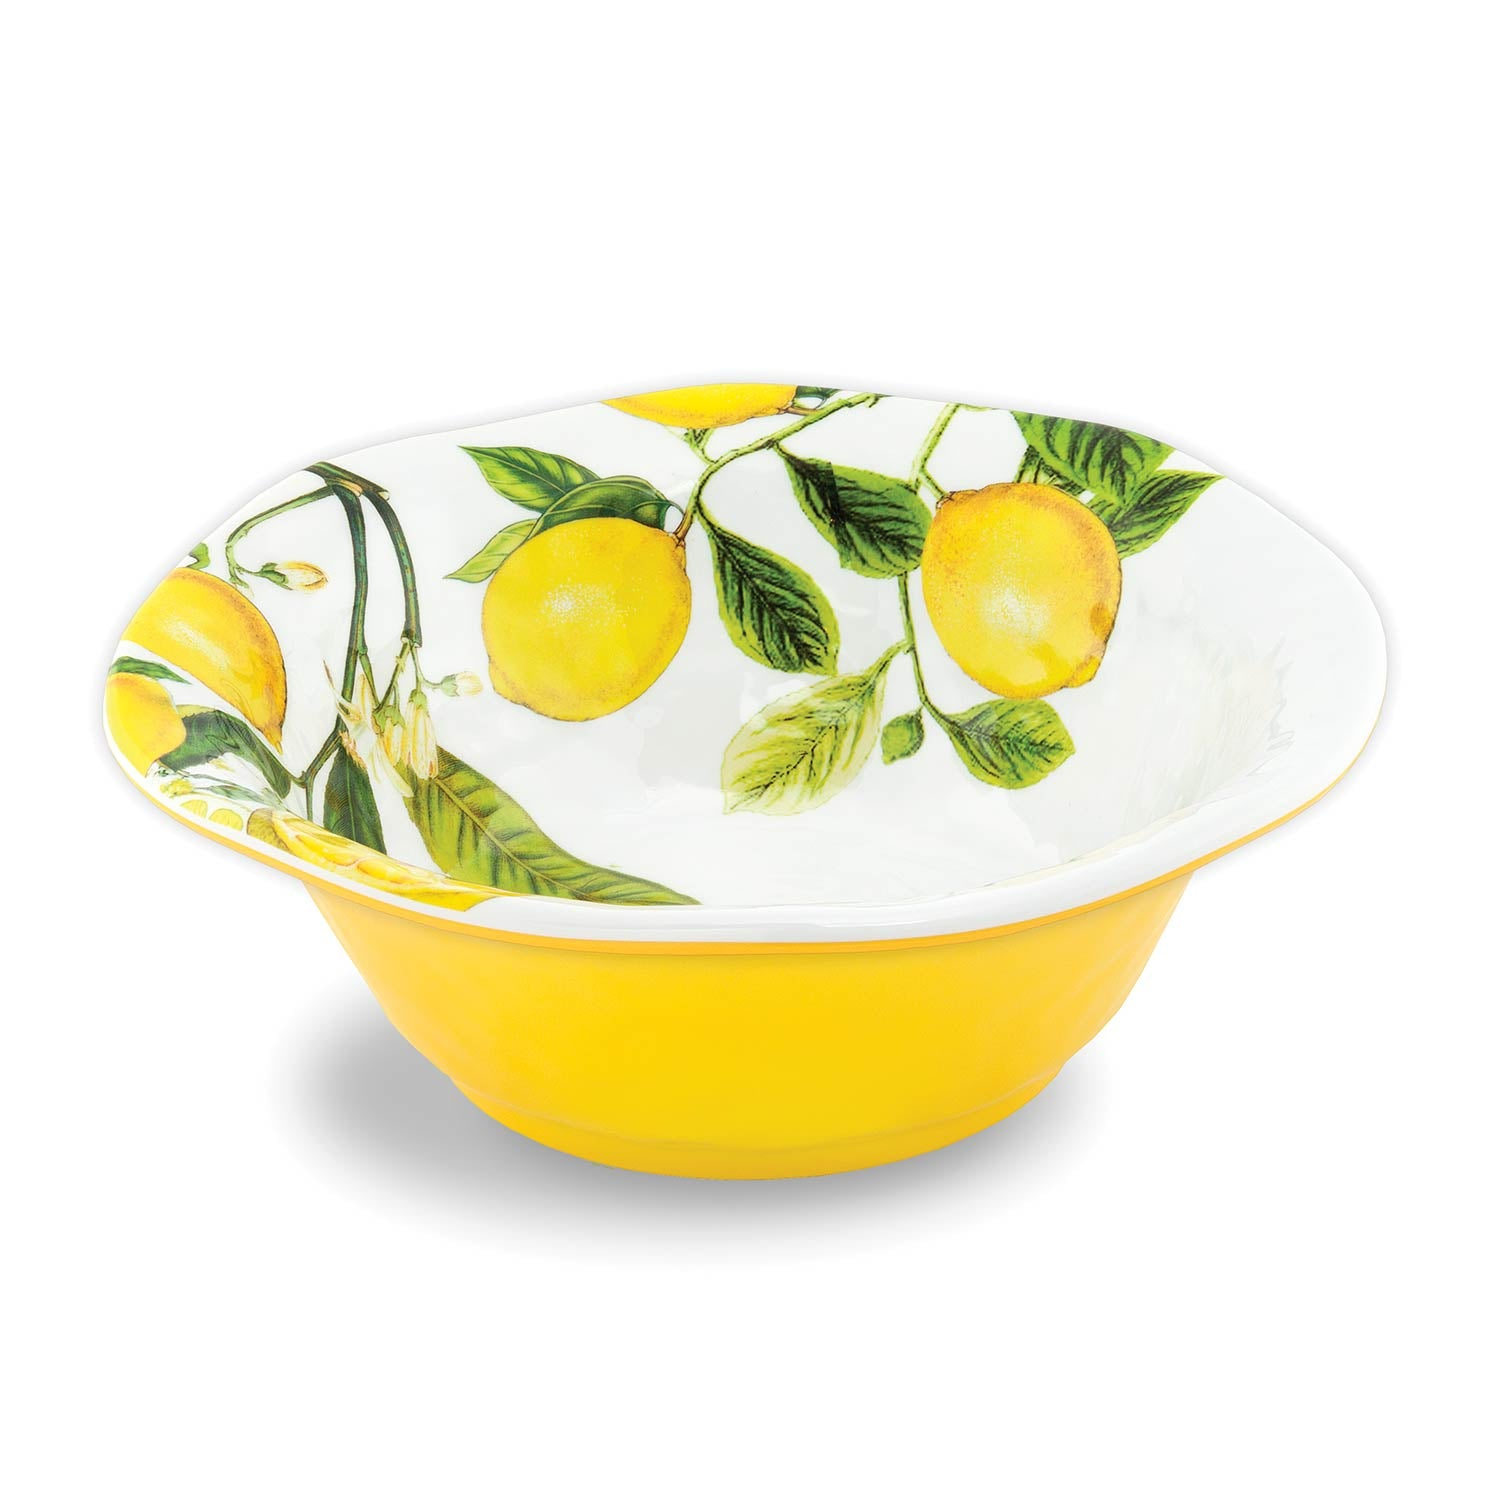 Lemon Basil Melamine Medium Bowl